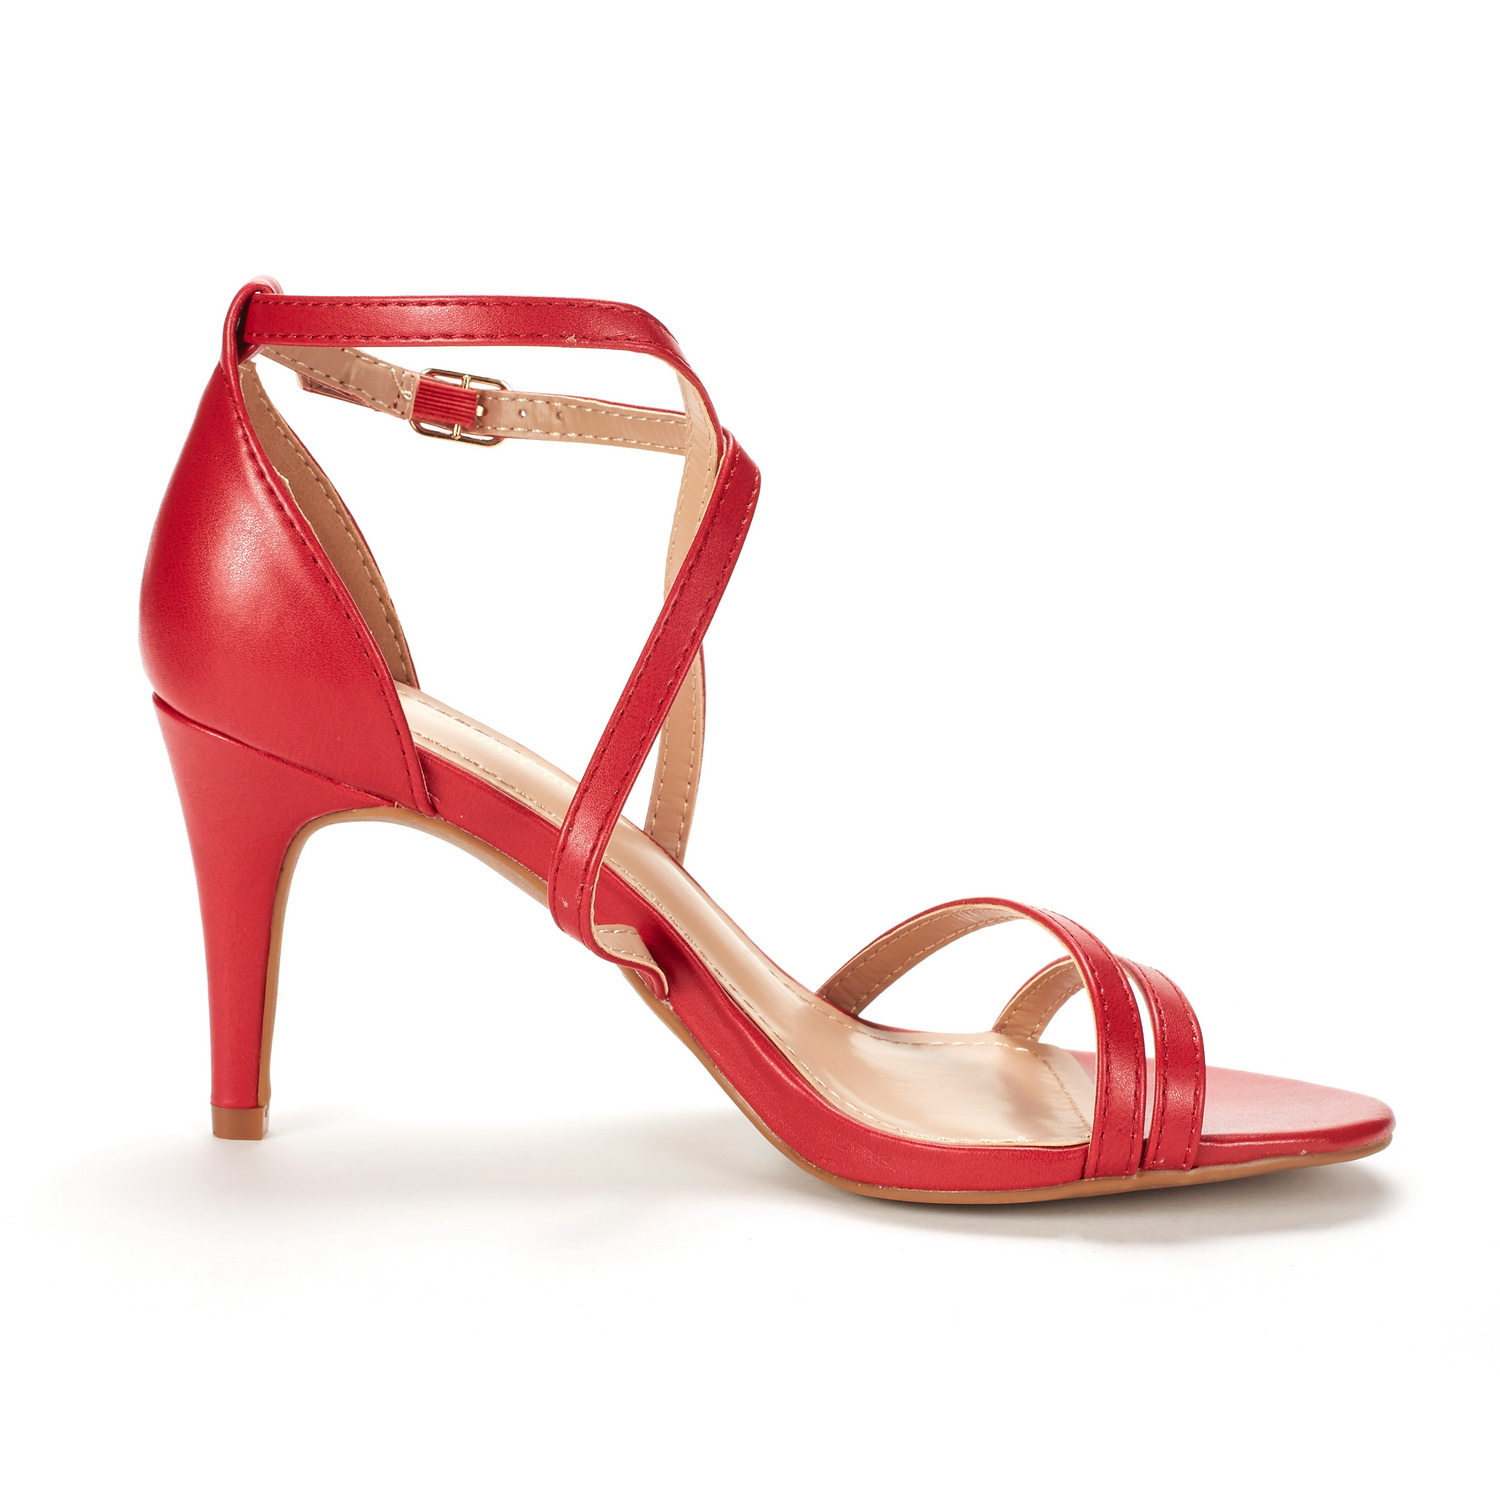 DREAM-PAIRS-Women-039-s-Ankle-Strap-High-Heel-Sandals-Dress-Shoes-Wedding-Party thumbnail 28